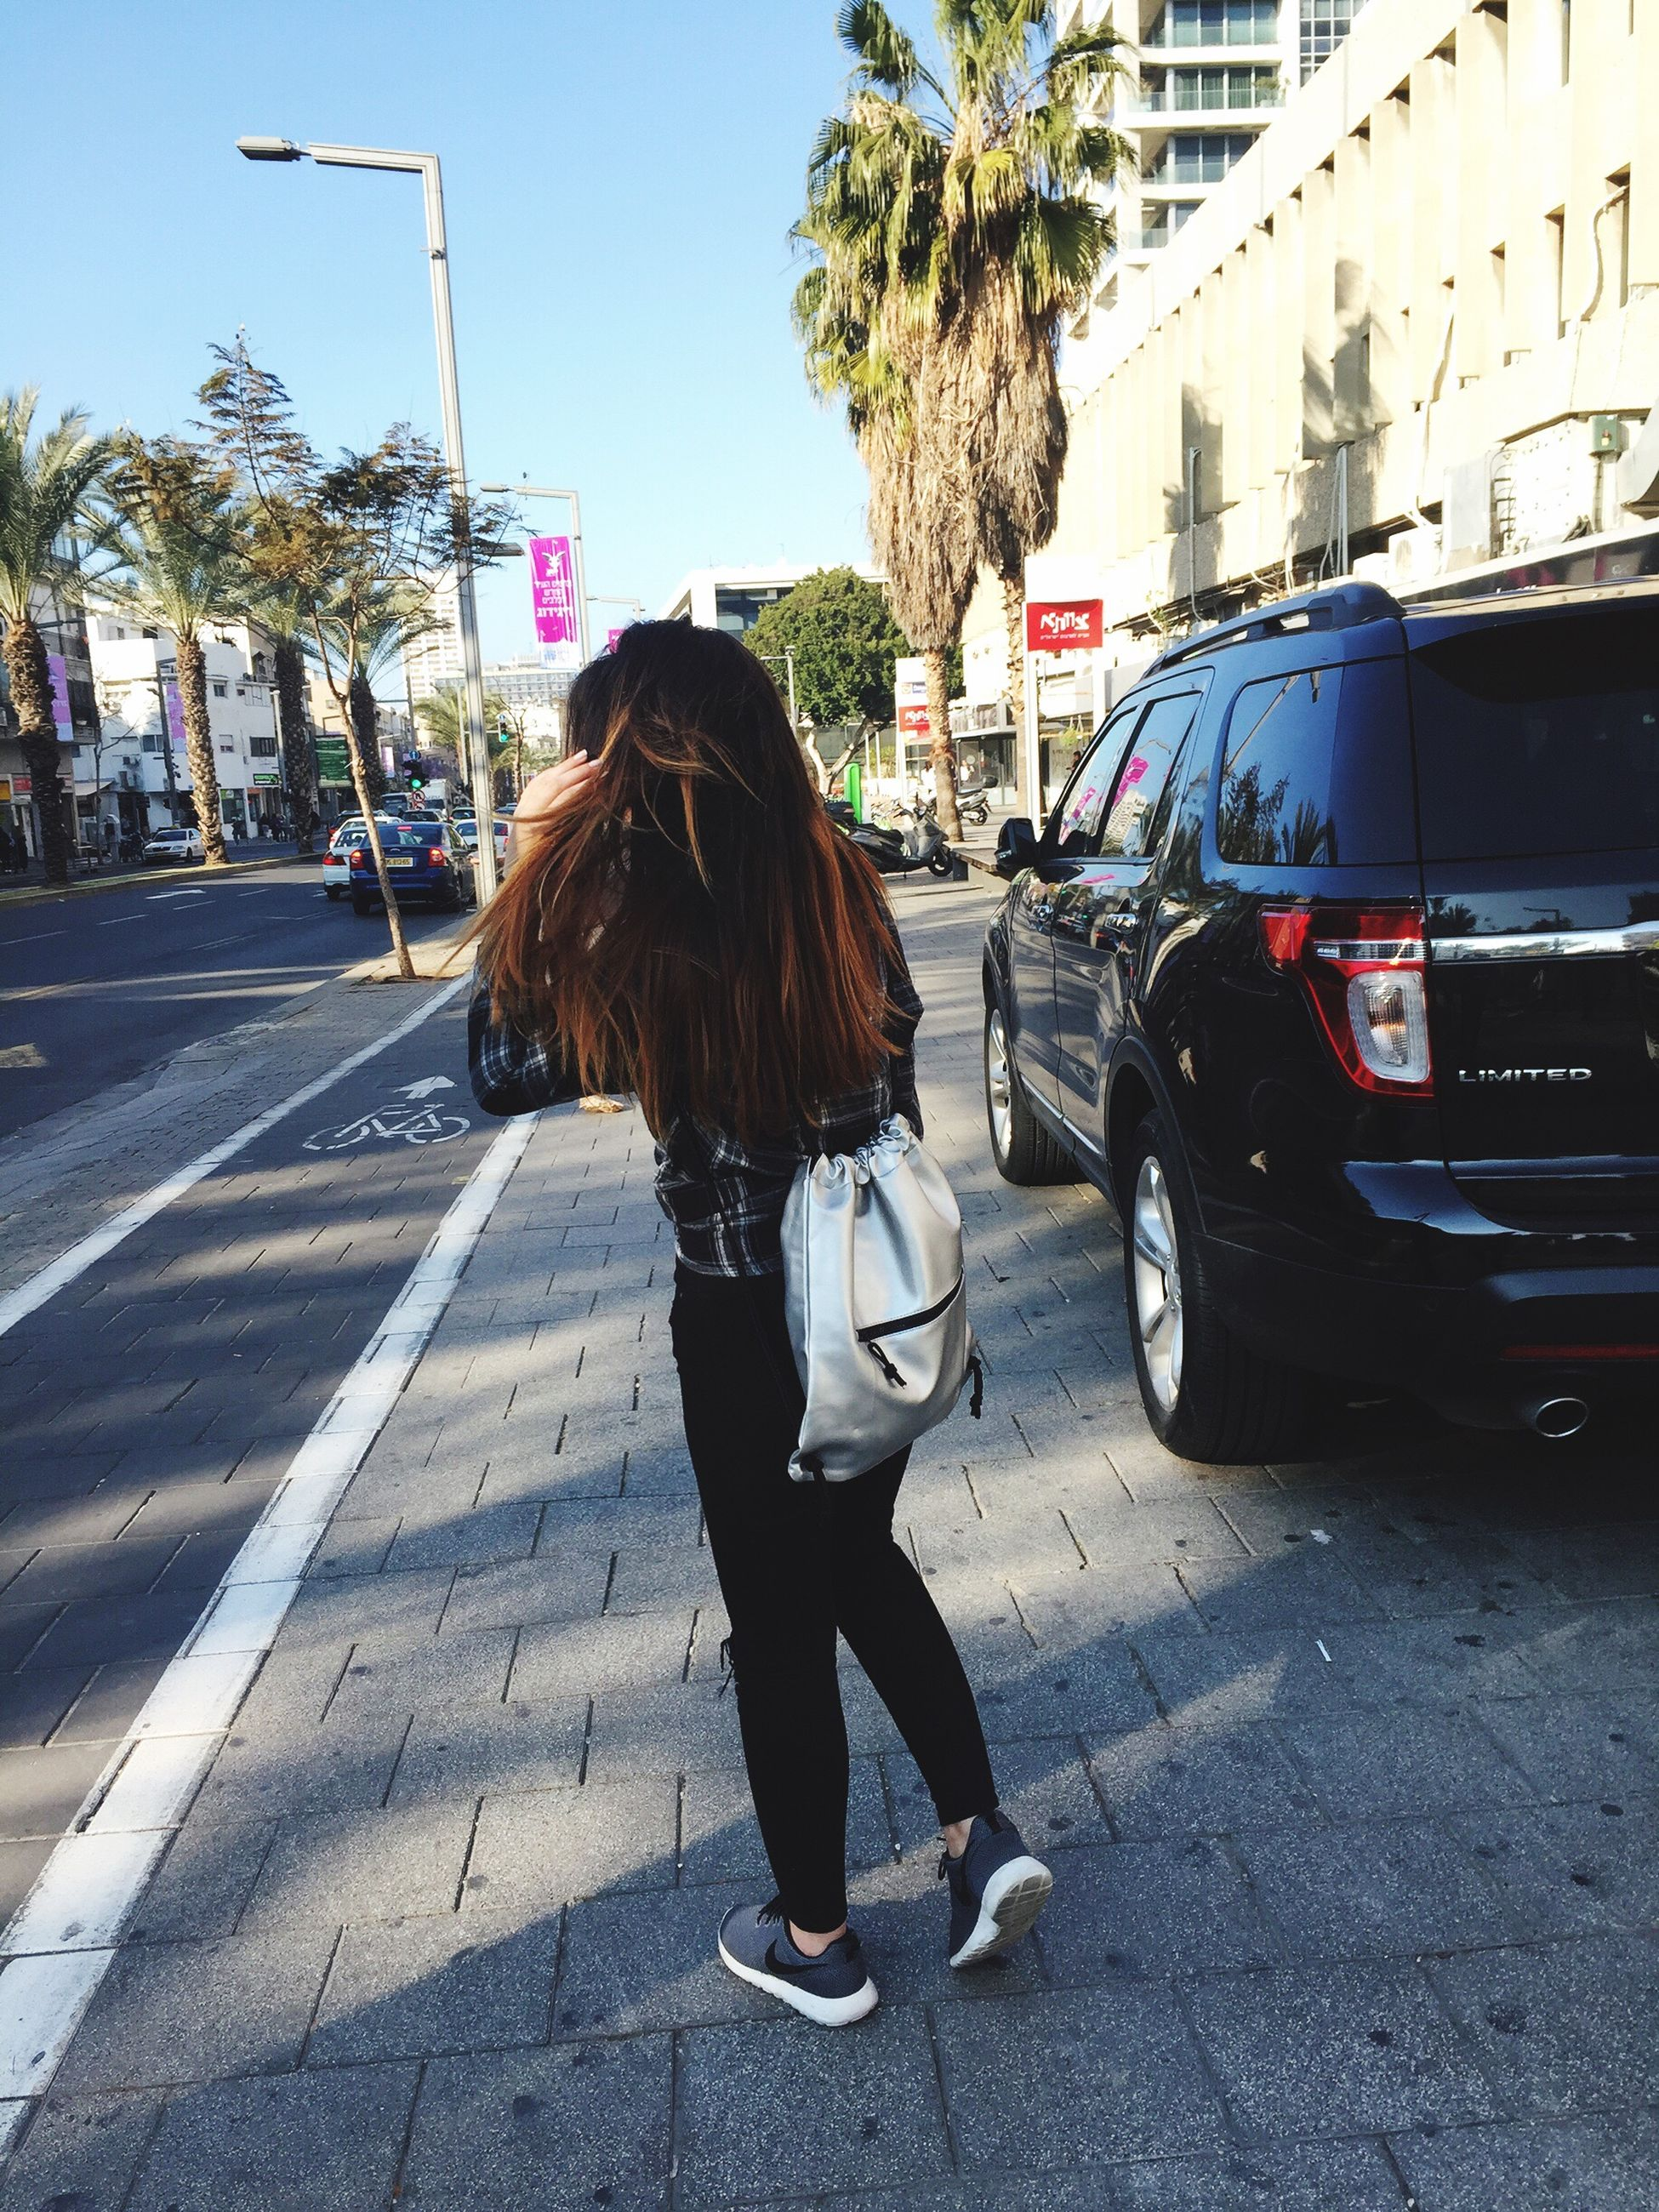 real people, full length, rear view, one person, street, transportation, lifestyles, outdoors, day, mode of transport, land vehicle, car, women, leisure activity, city, one woman only, sky, architecture, only women, adults only, people, adult